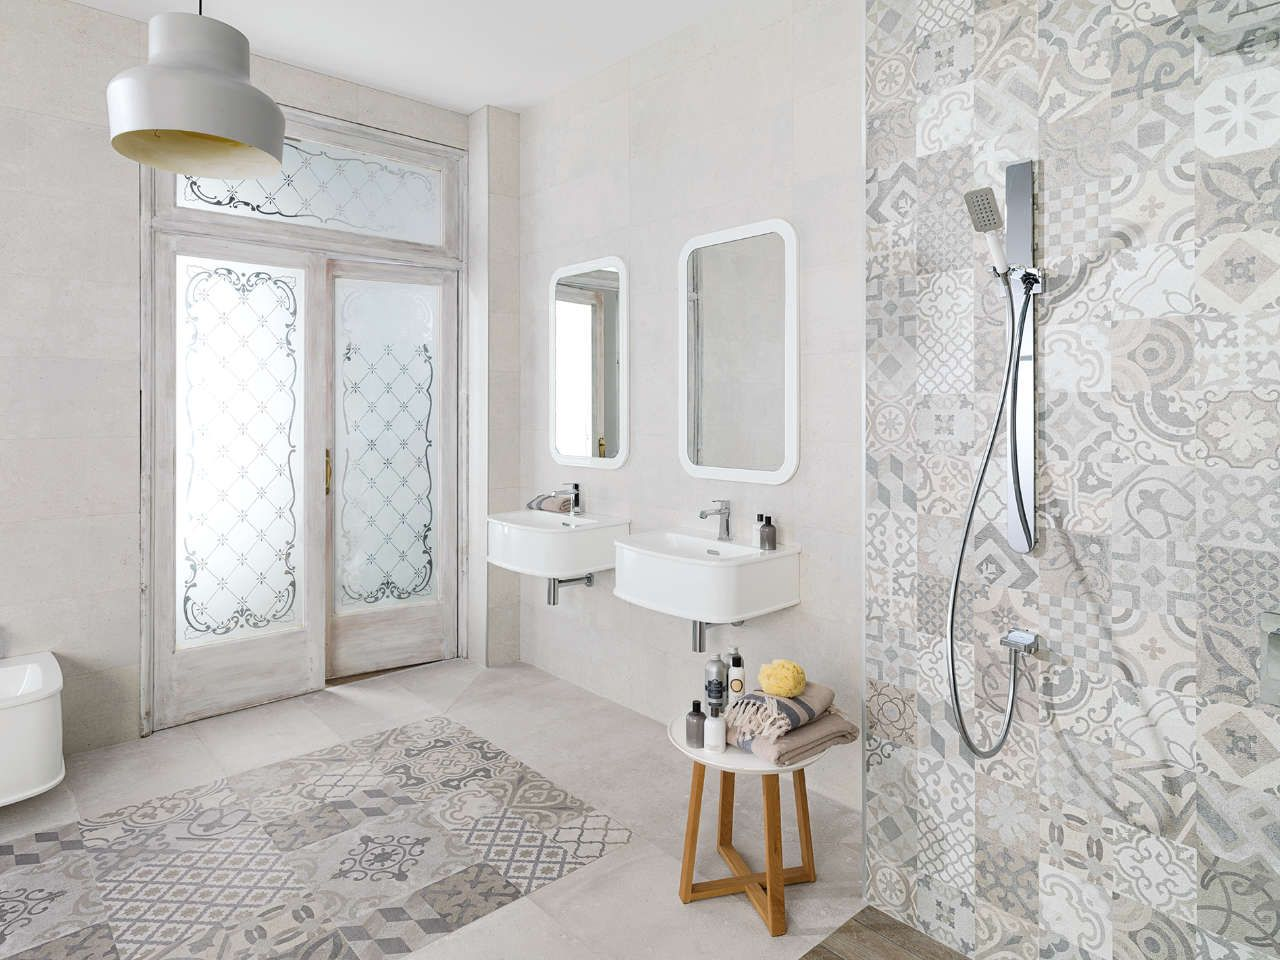 Ceramic stone ston ker is known as the porcelanosa ceramic stone ston ker is known as the porcelanosa ceramic stone a resistant material with a surface that is unaffected by even the most extreme conditions dailygadgetfo Images